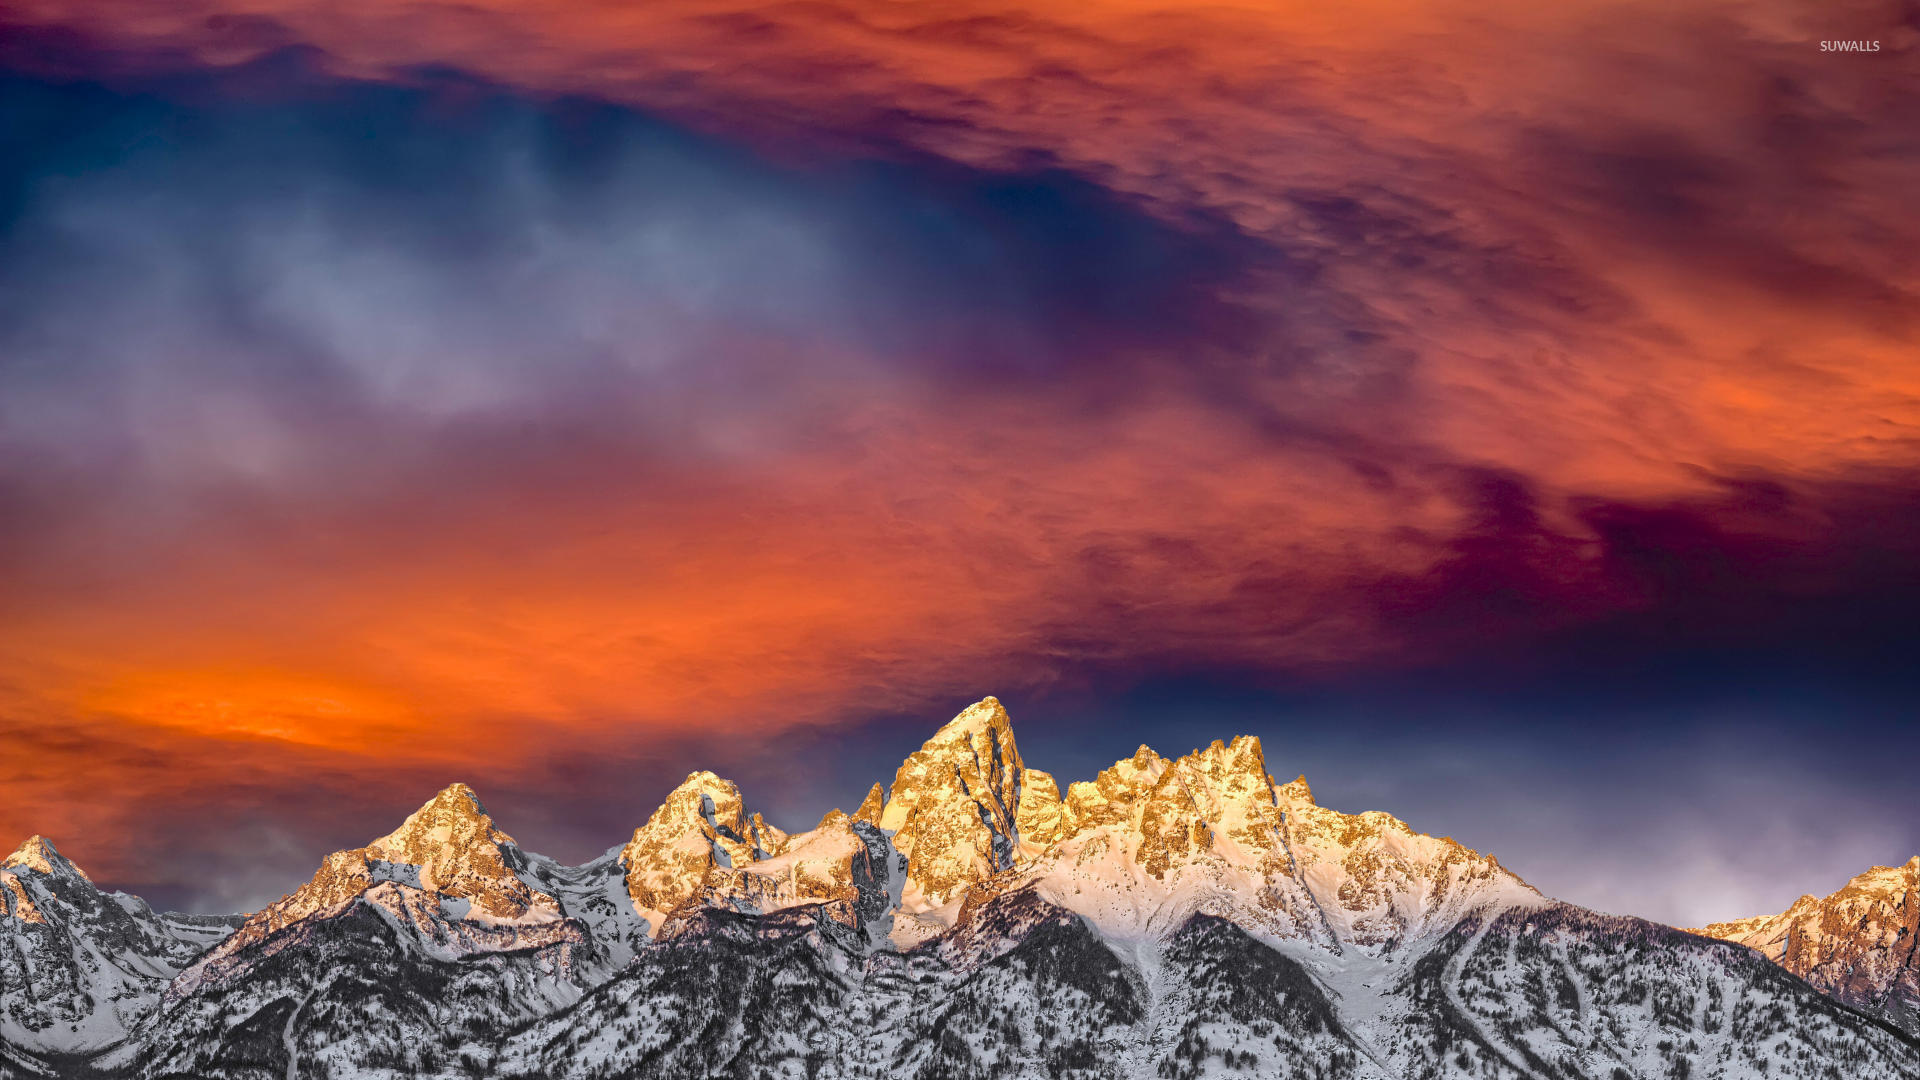 Res: 1920x1080, Snowy Mountain Sunset Wallpapers Full Hd